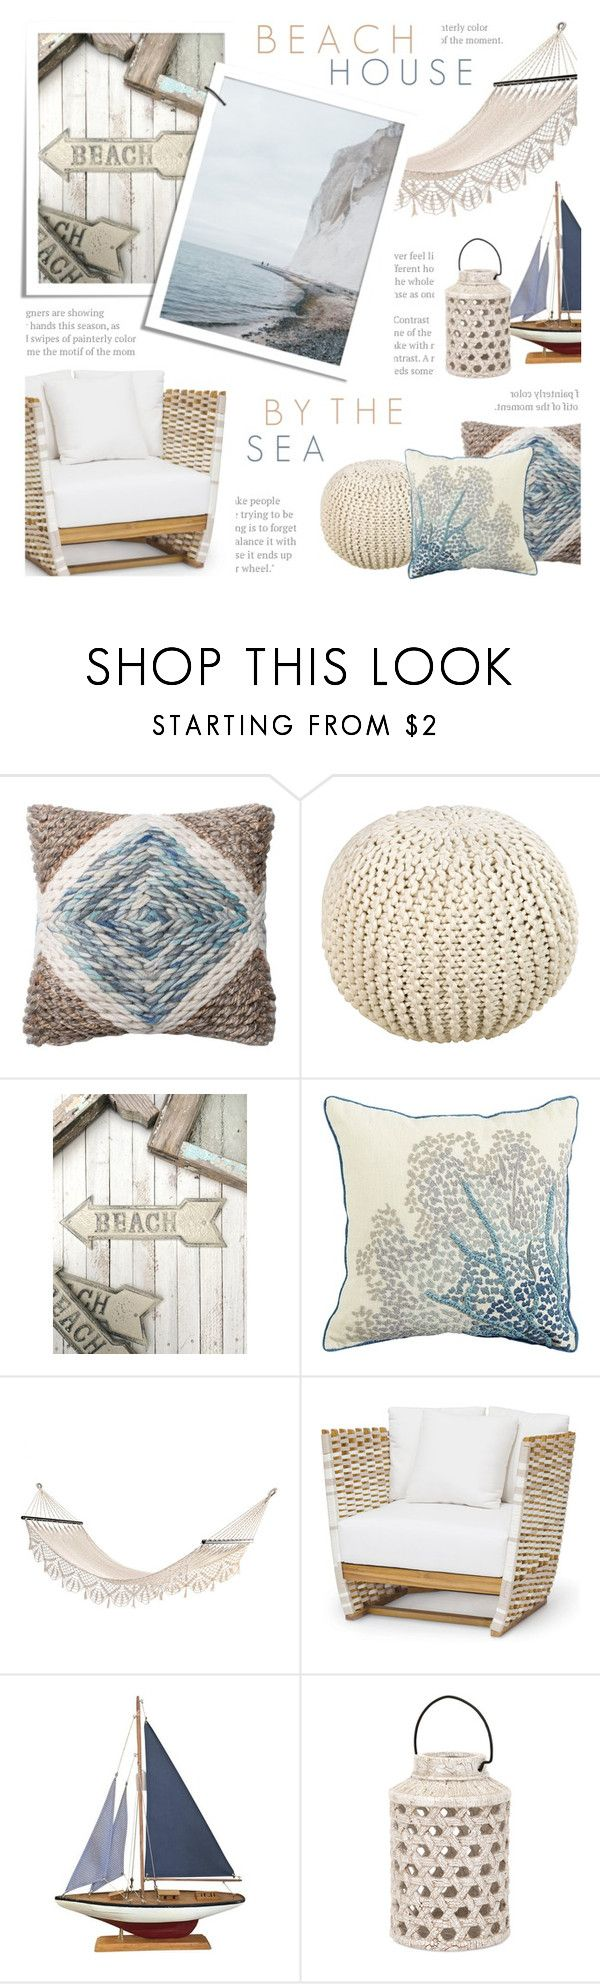 """""""Beach House"""" by c-silla ❤ liked on Polyvore featuring interior, interiors, interior design, home, home decor, interior decorating, Loloi Rugs, Surya, Pier 1 Imports and DAY Birger et Mikkelsen"""